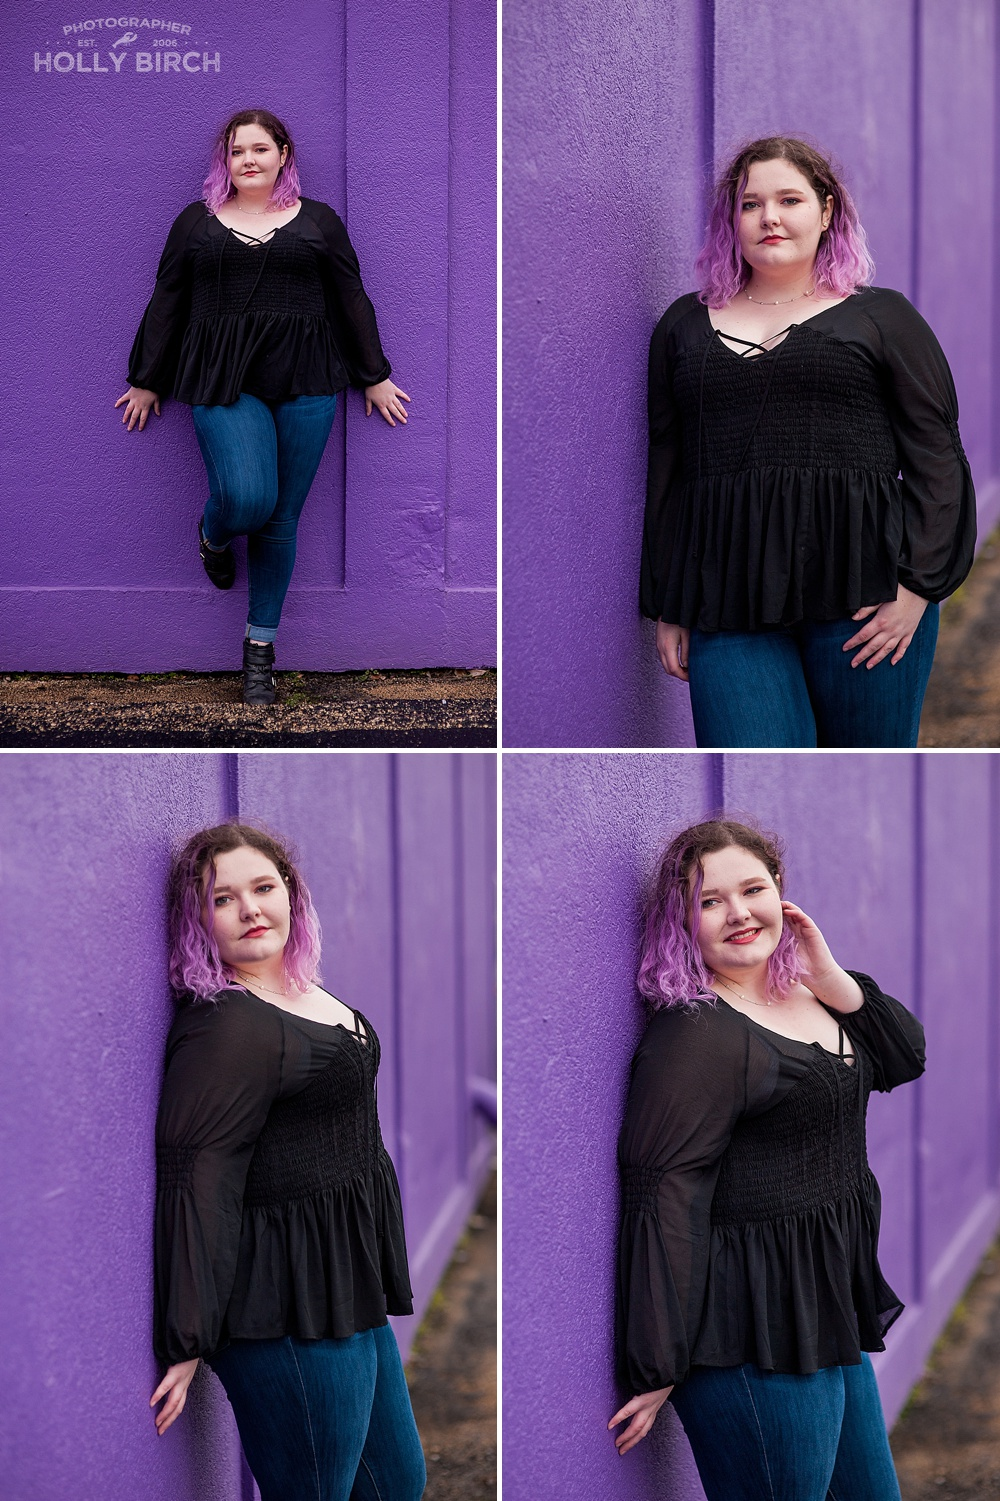 purple hair accented by purple wall